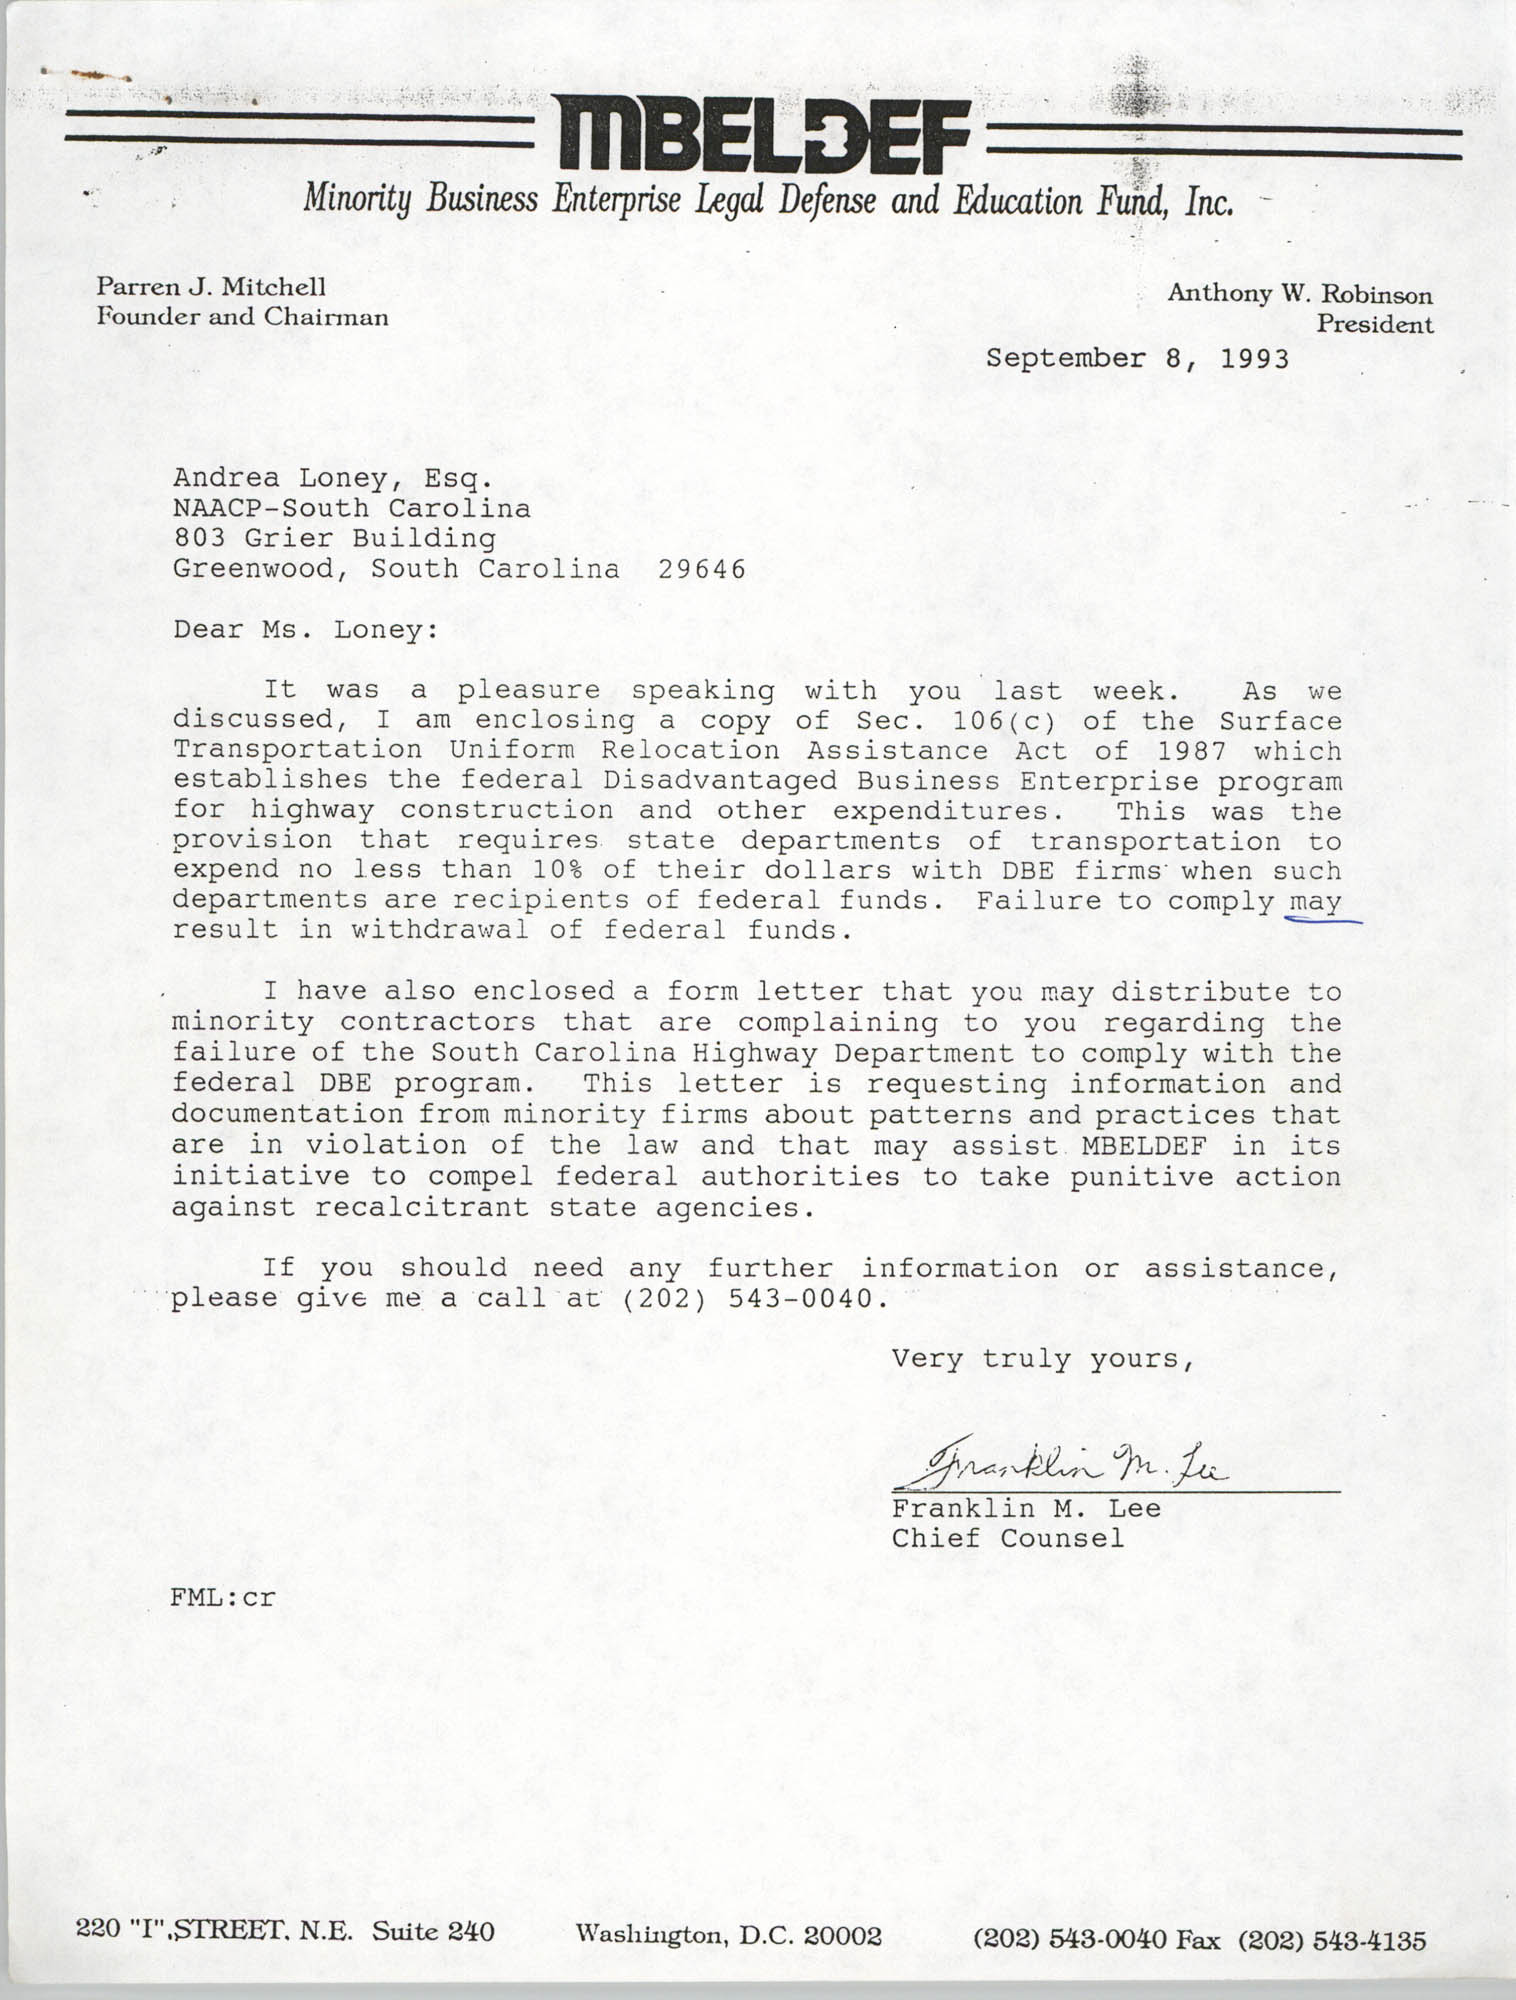 Letter from Nancy S. Layman to Andrea Loney, September 19, 1993